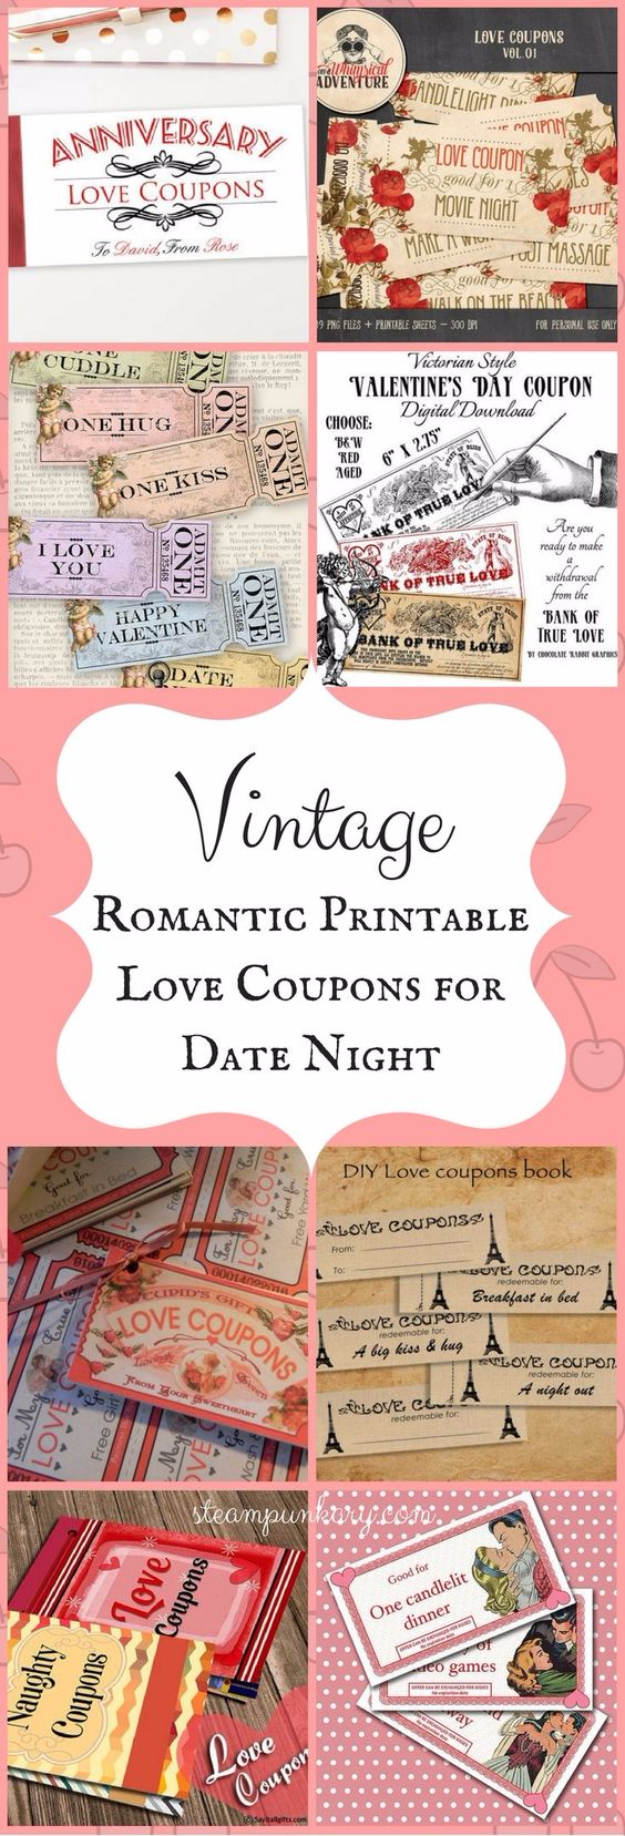 our time dating coupons